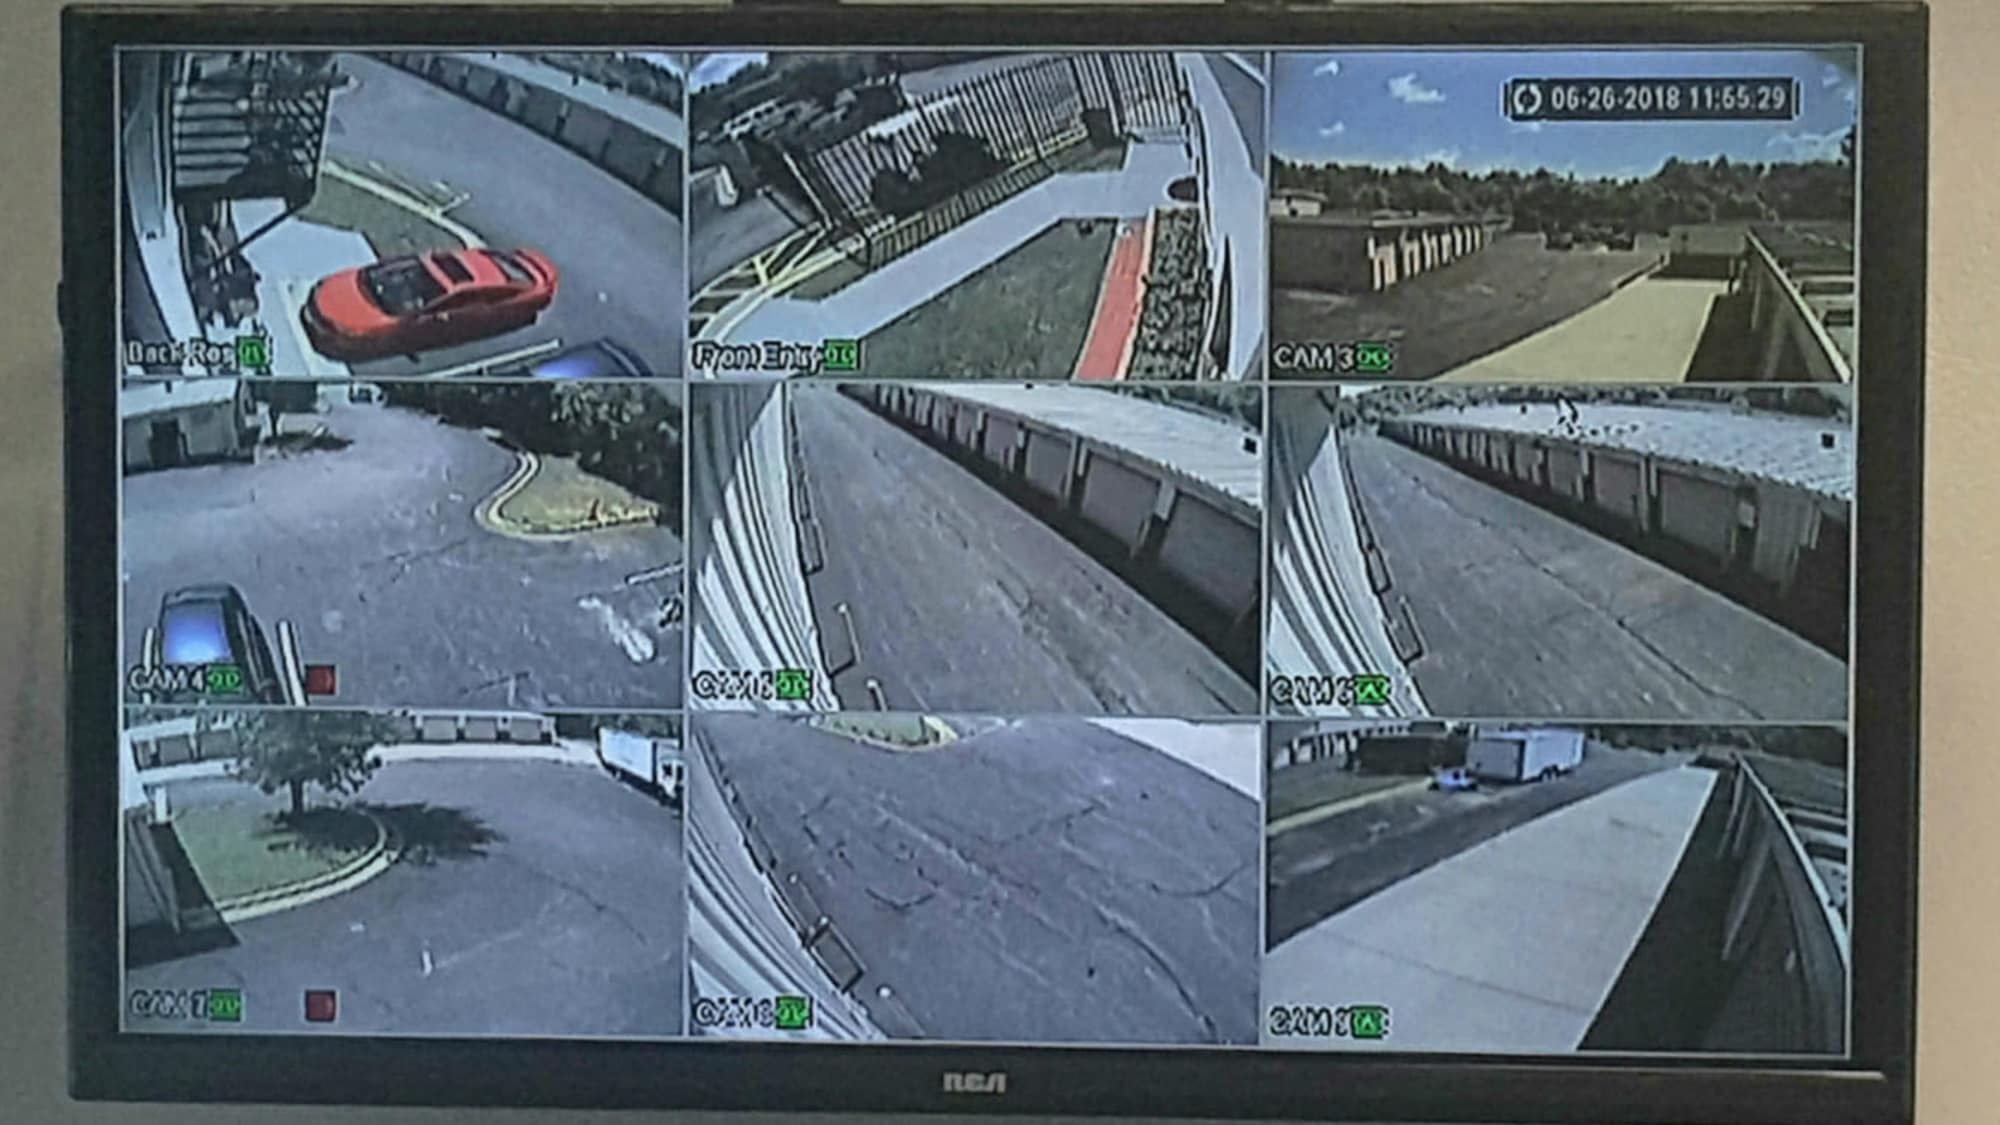 Security monitor at Seabrook Self Storage in Seabrook, Maryland